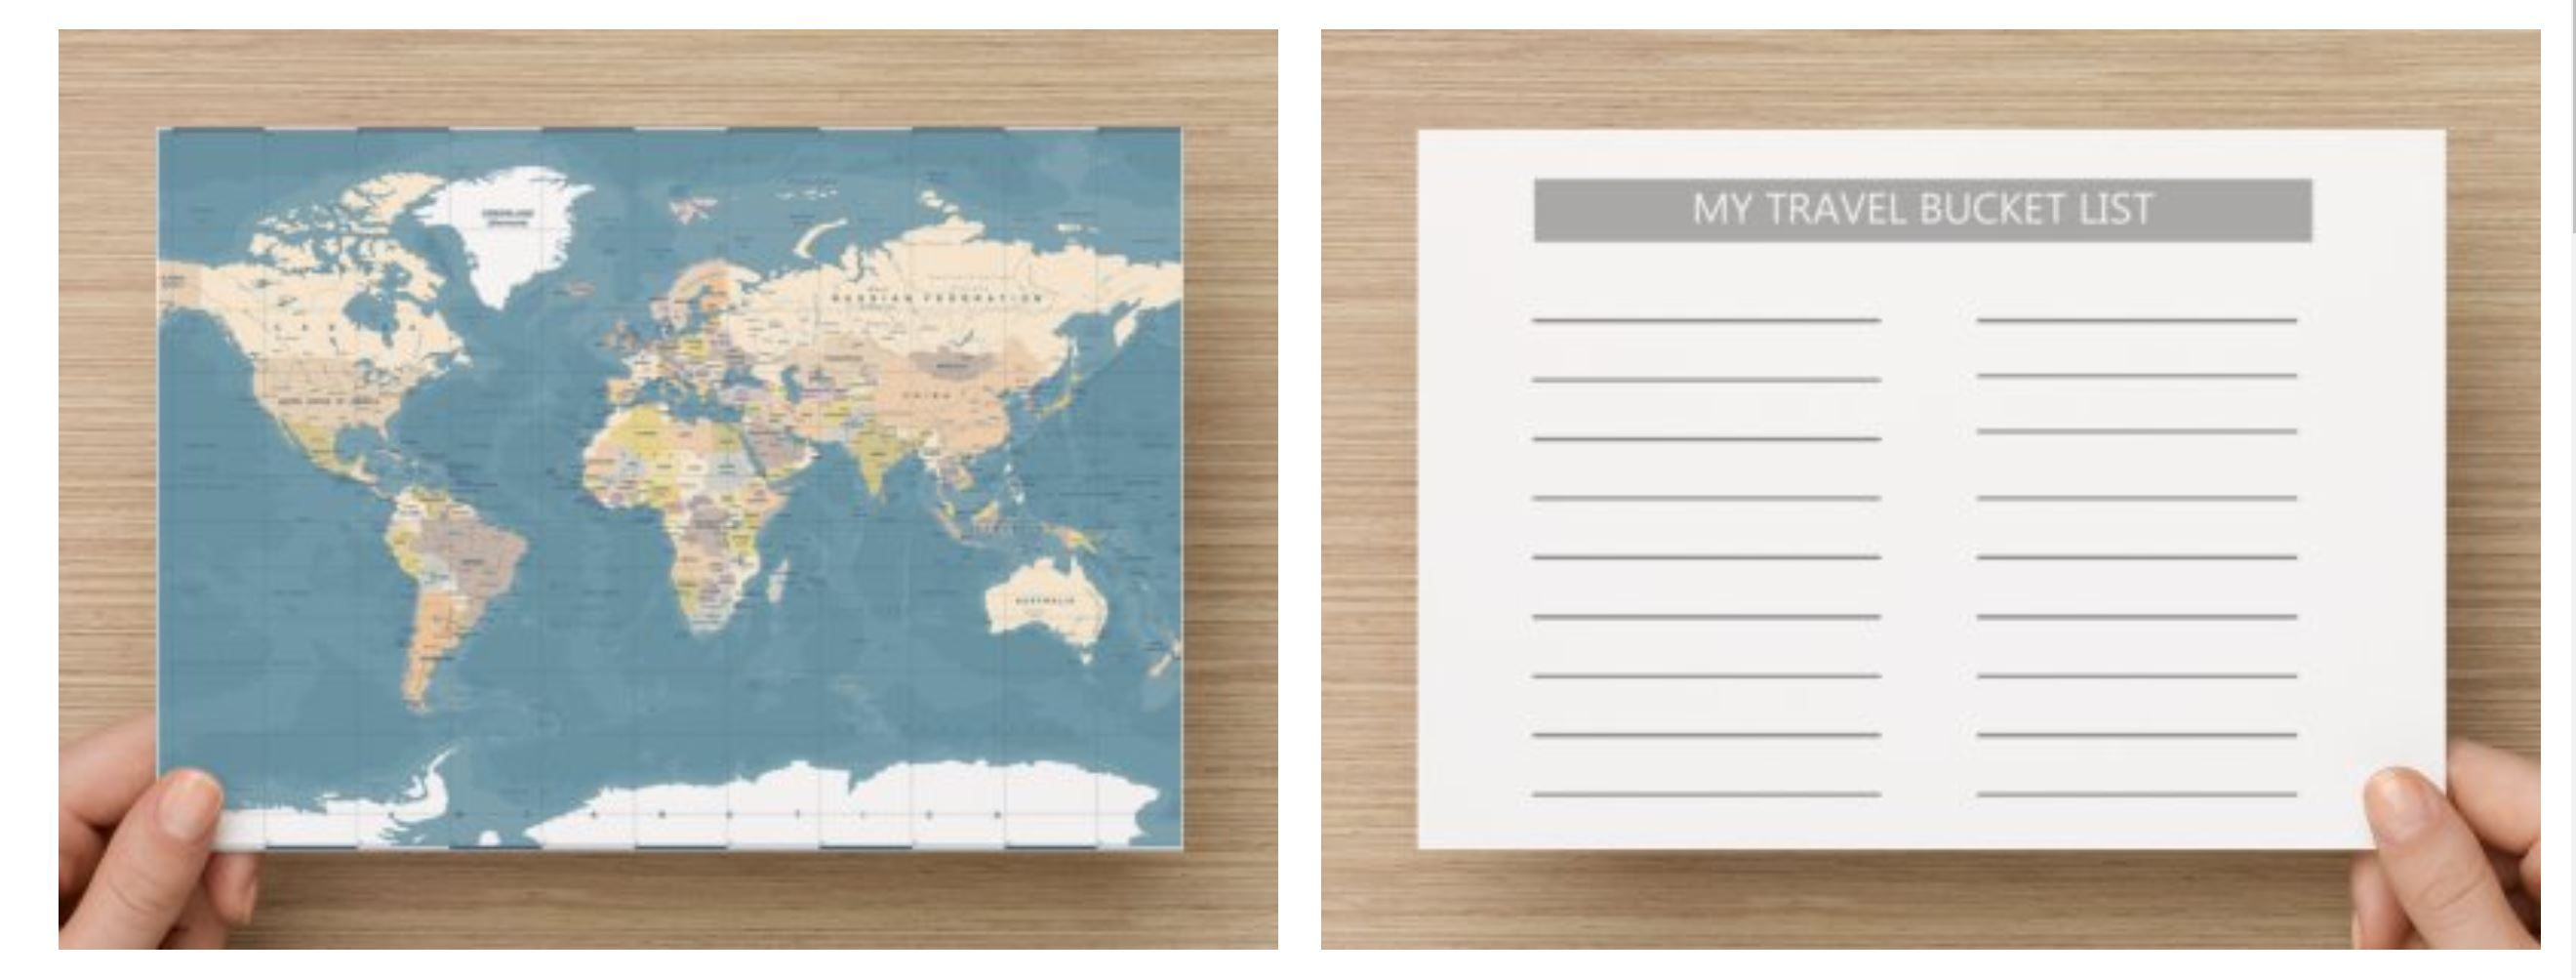 Mini World Map.Mini World Map In A5 Size With Travel Bucket List On Backside